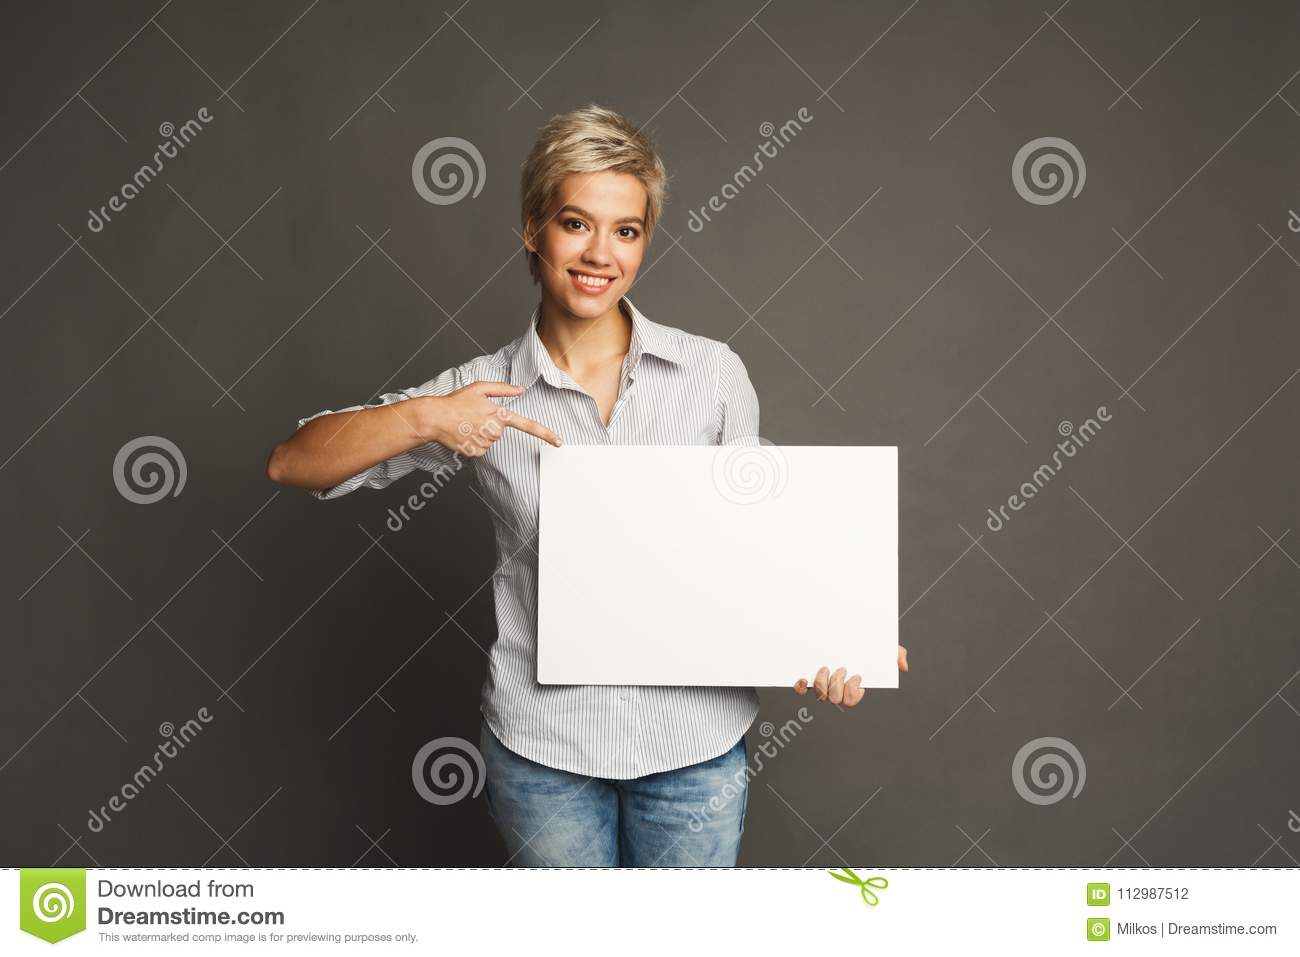 Young woman with blank white paper